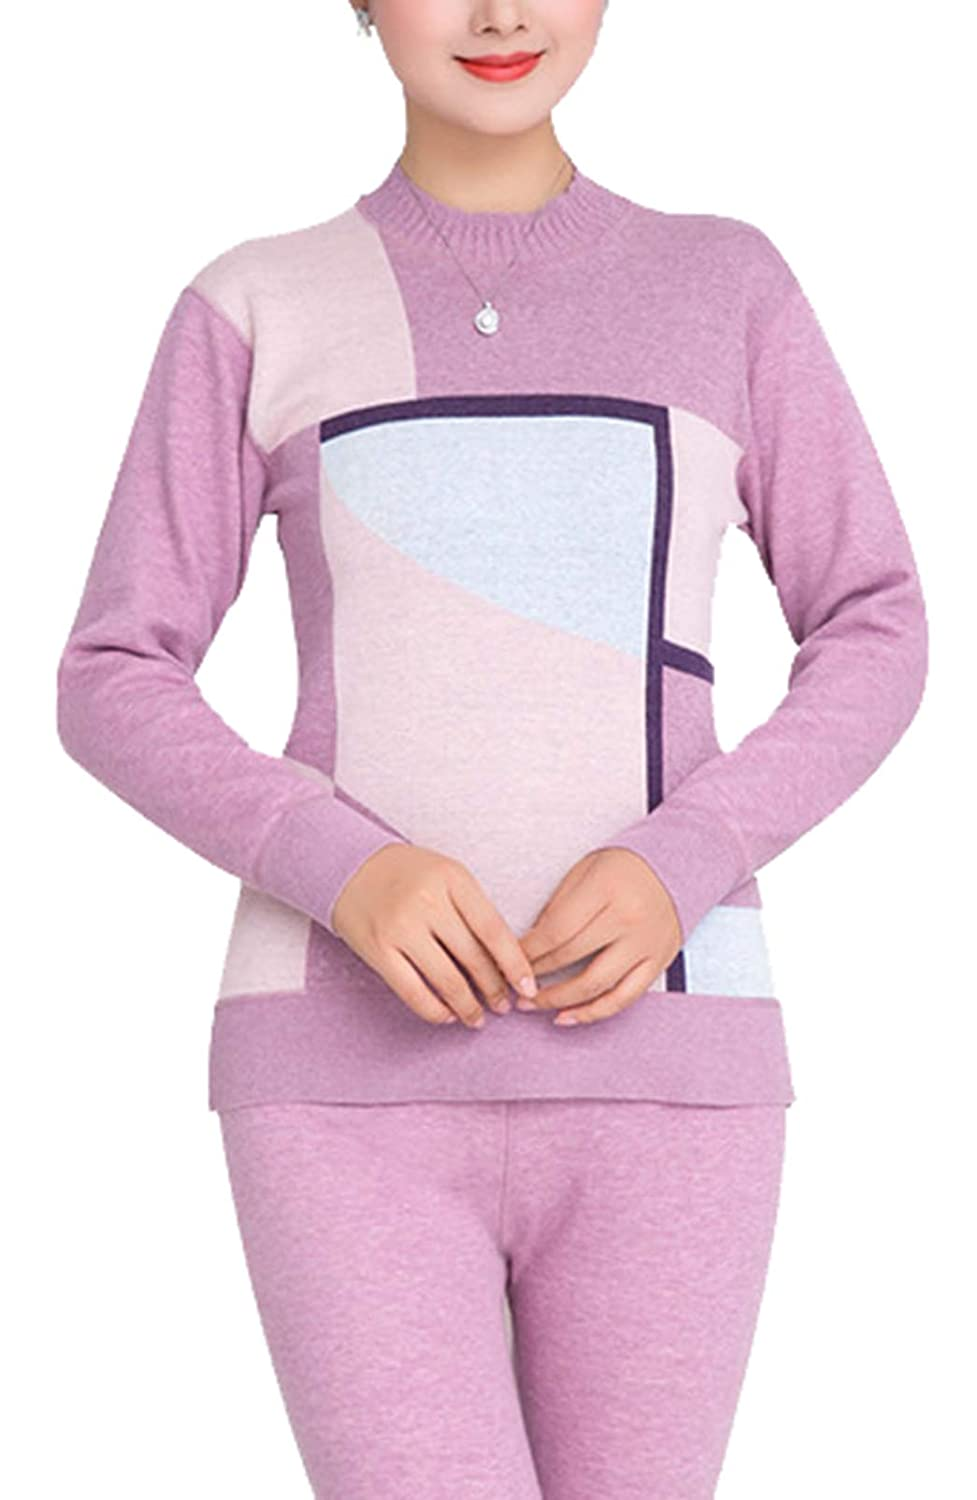 YVWTUC Middle-Aged Women High Neck Thermal Underwear Set Autumn Top and Bottom Pajamas 2Pc